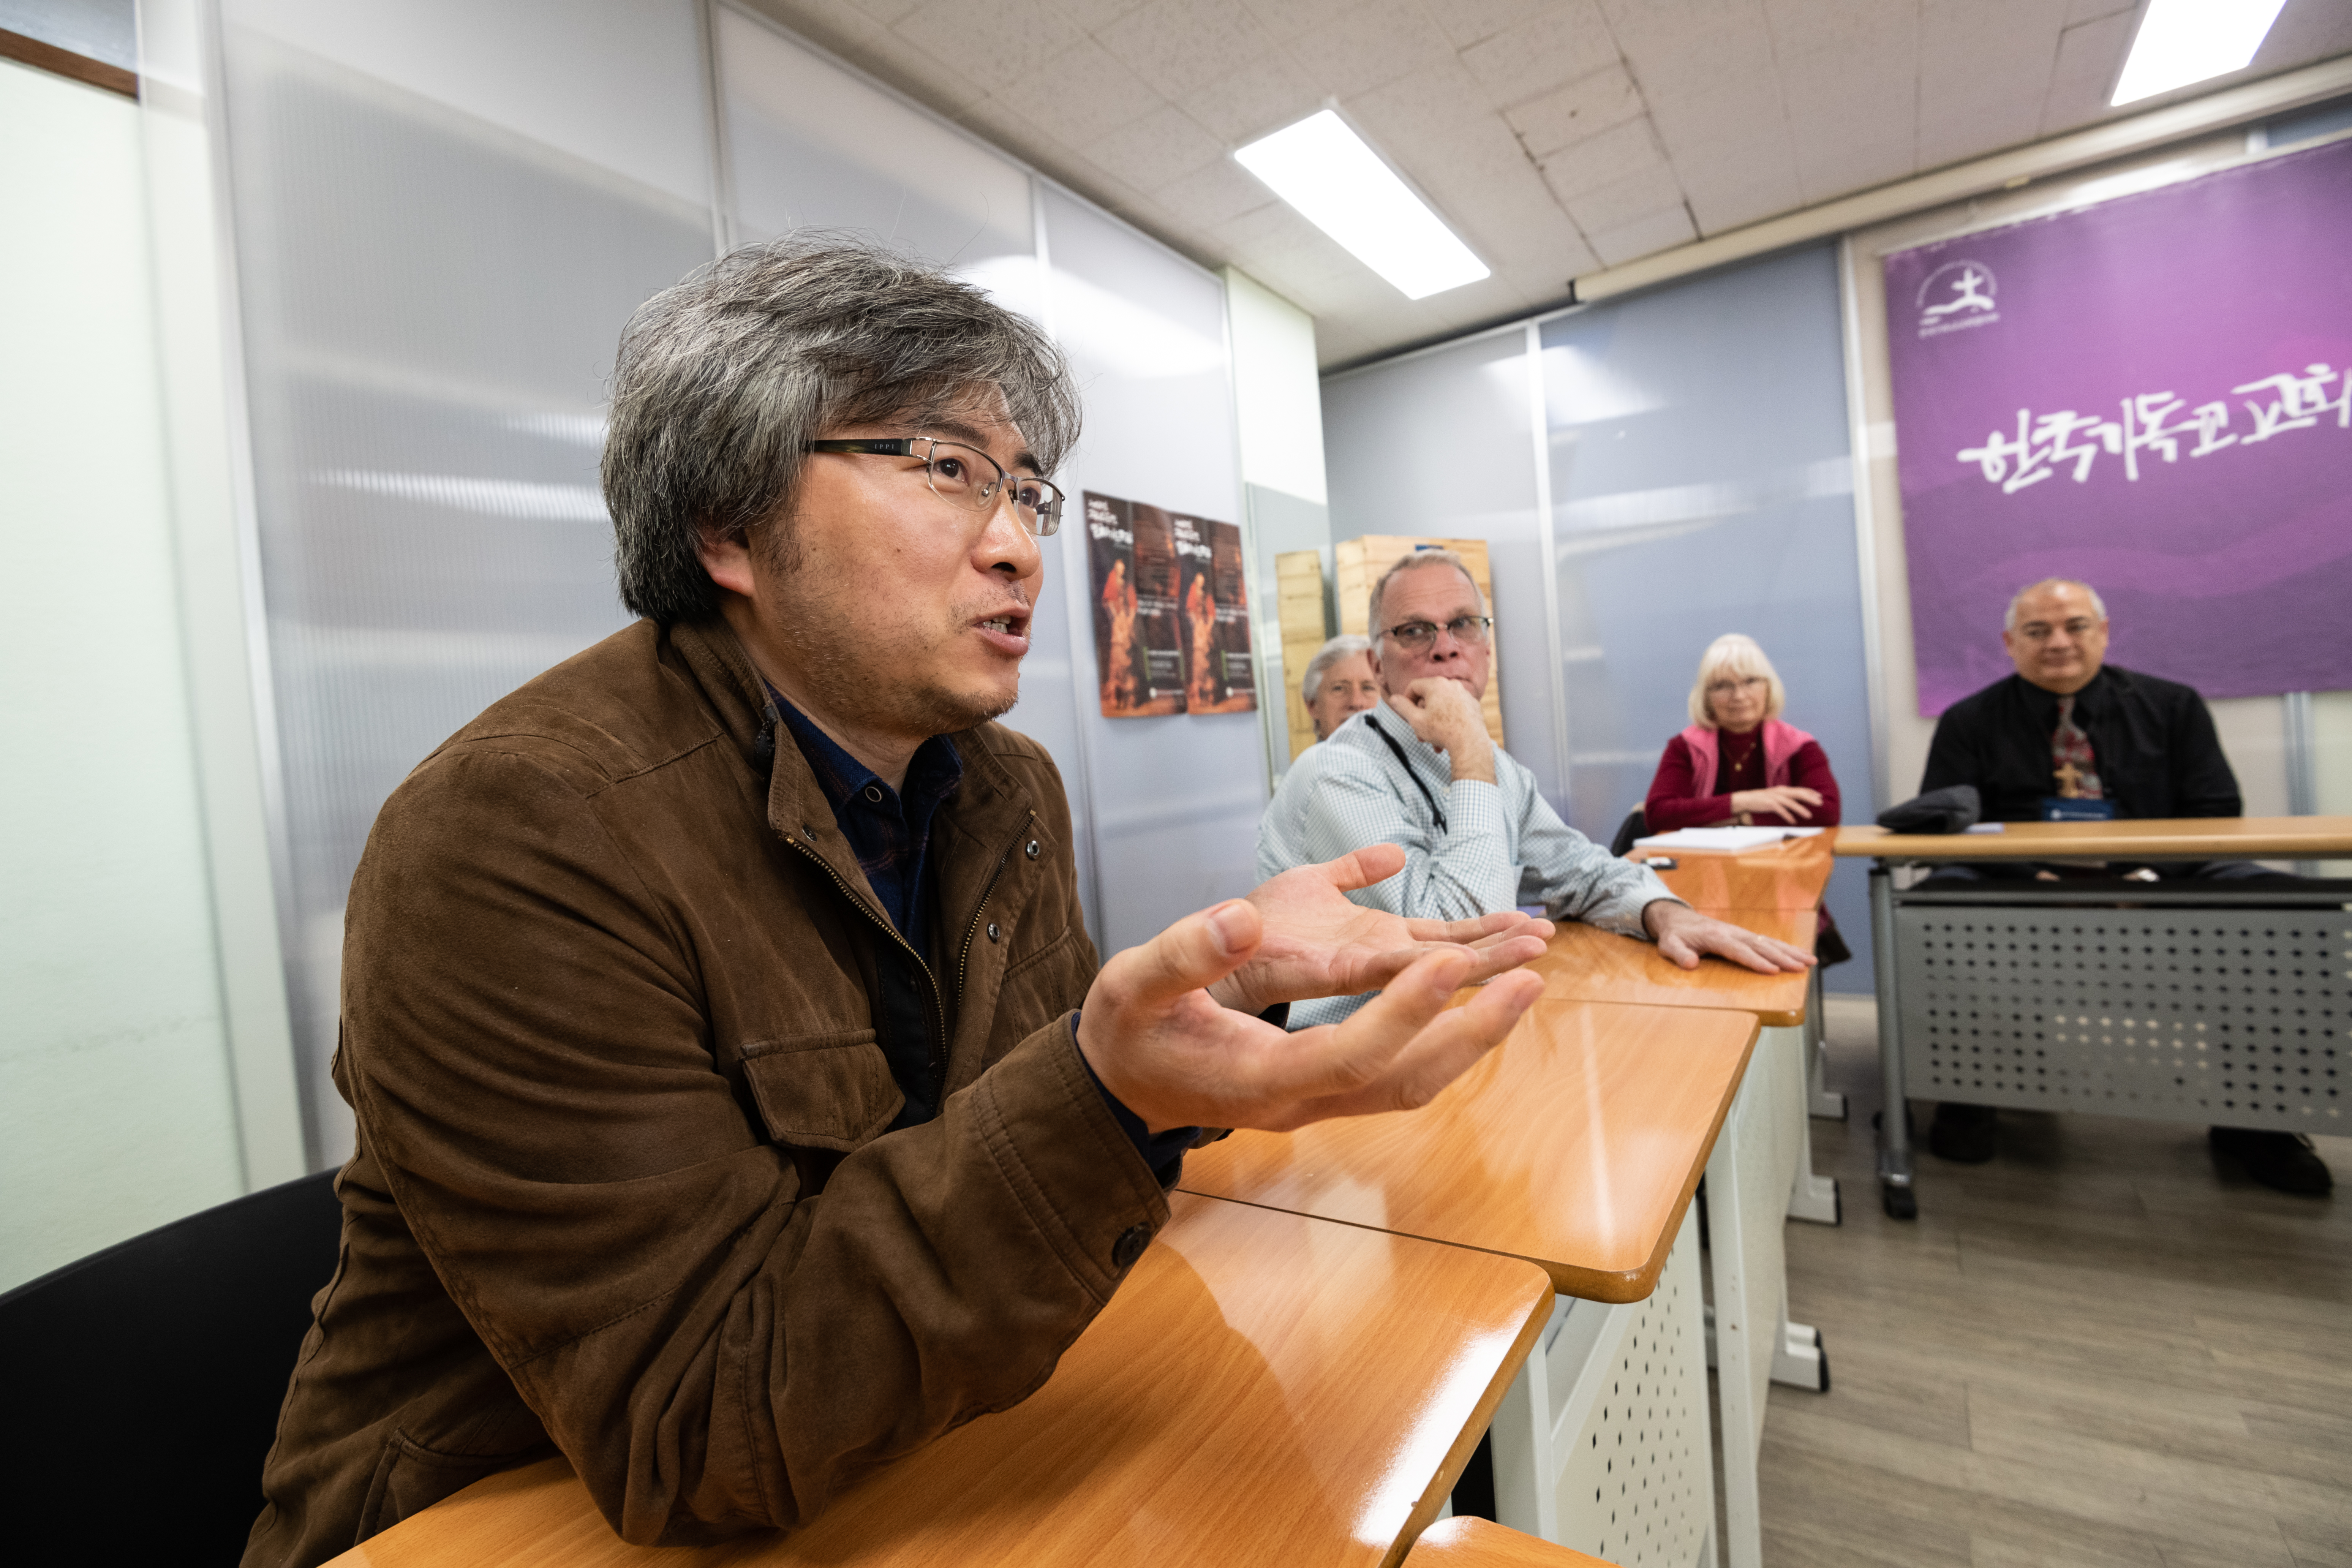 The Rev Hye-min Roh, program director for the Reconciliation and Unification Department of the National Council of Churches in Korea (NCCK), speaks with Presbyterian Peacemaking Travel Study Seminar participants. (Photo by Gregg Brekke)